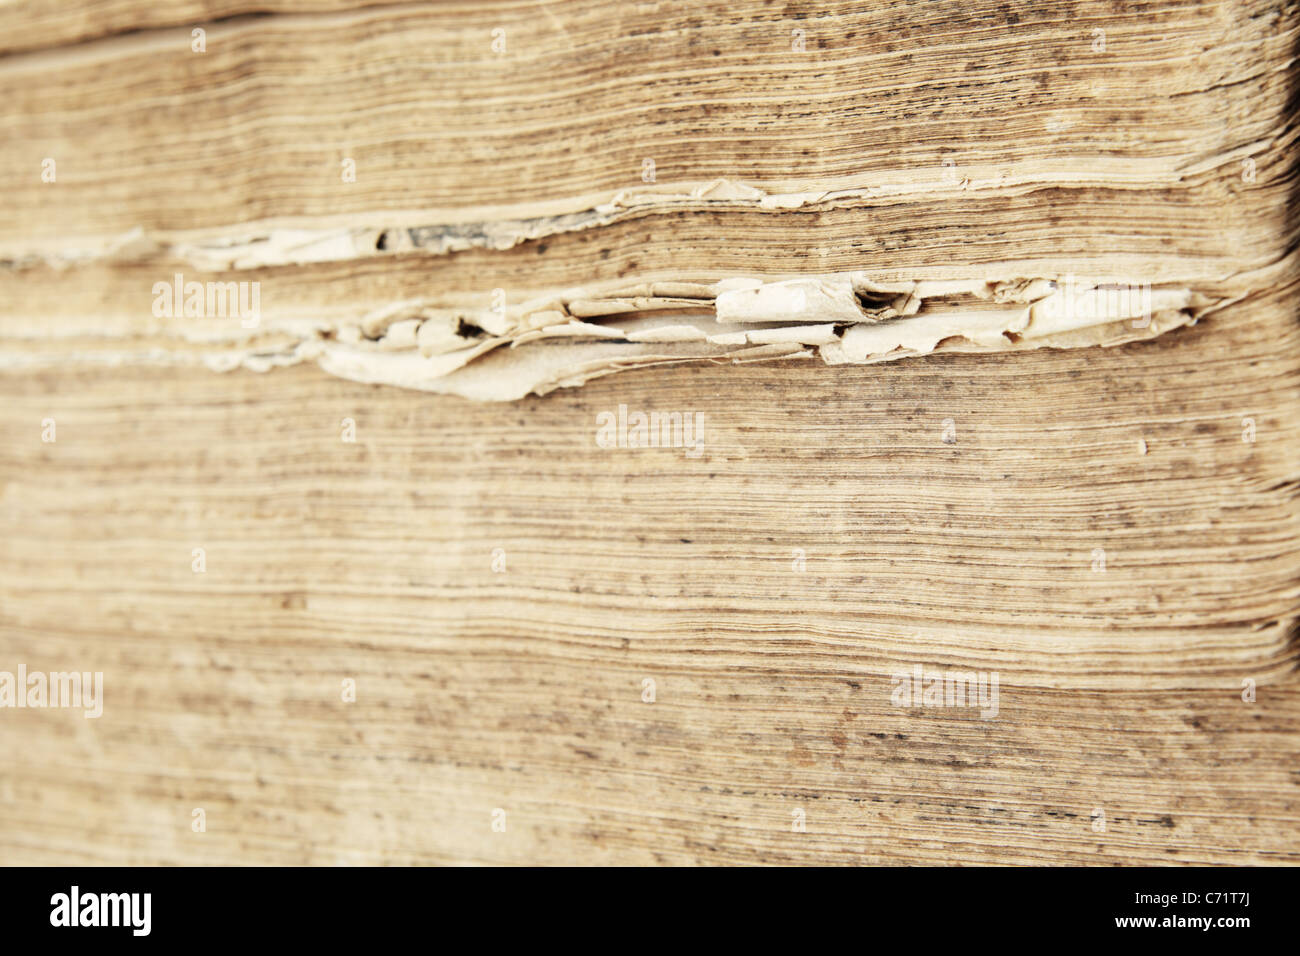 the worn and uneven ragged edges of an old antique book - Stock Image